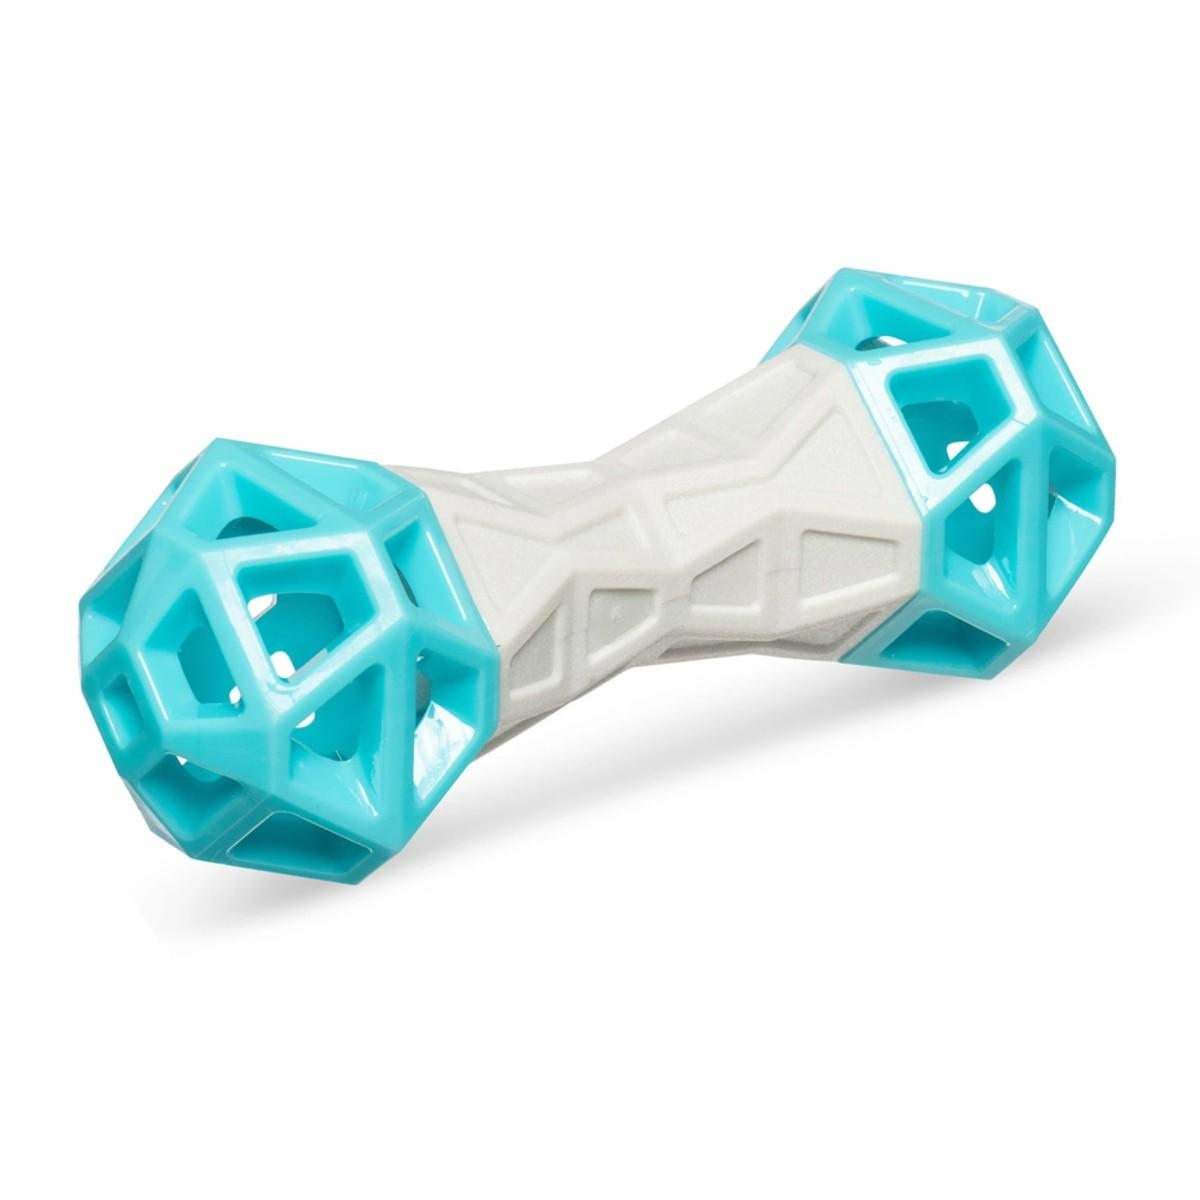 Totally Pooched Flex n' Squeak Foam Rubber Barbell Dog Toy - Grey/Teal